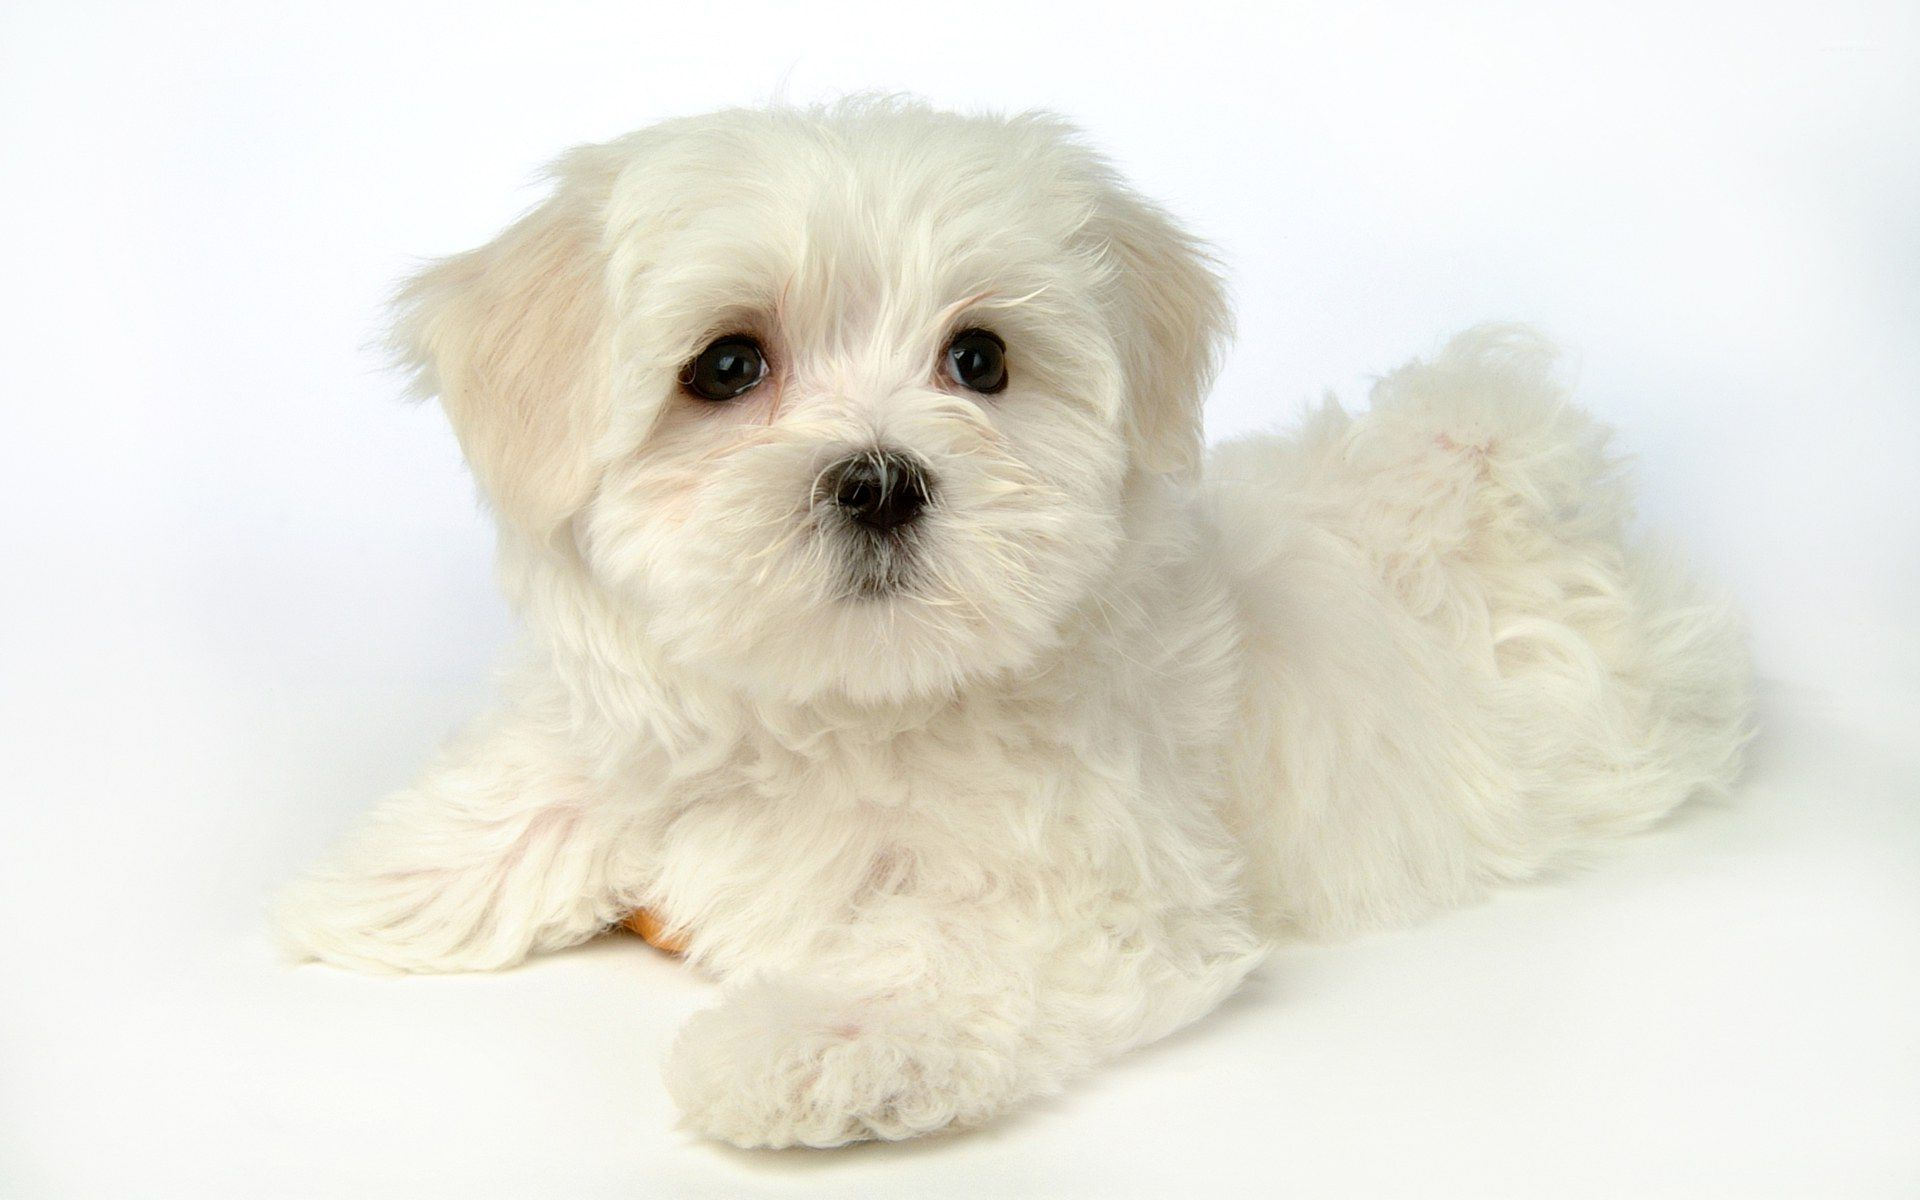 Cute White Puppy Wallpaper Animal Wallpapers 47754